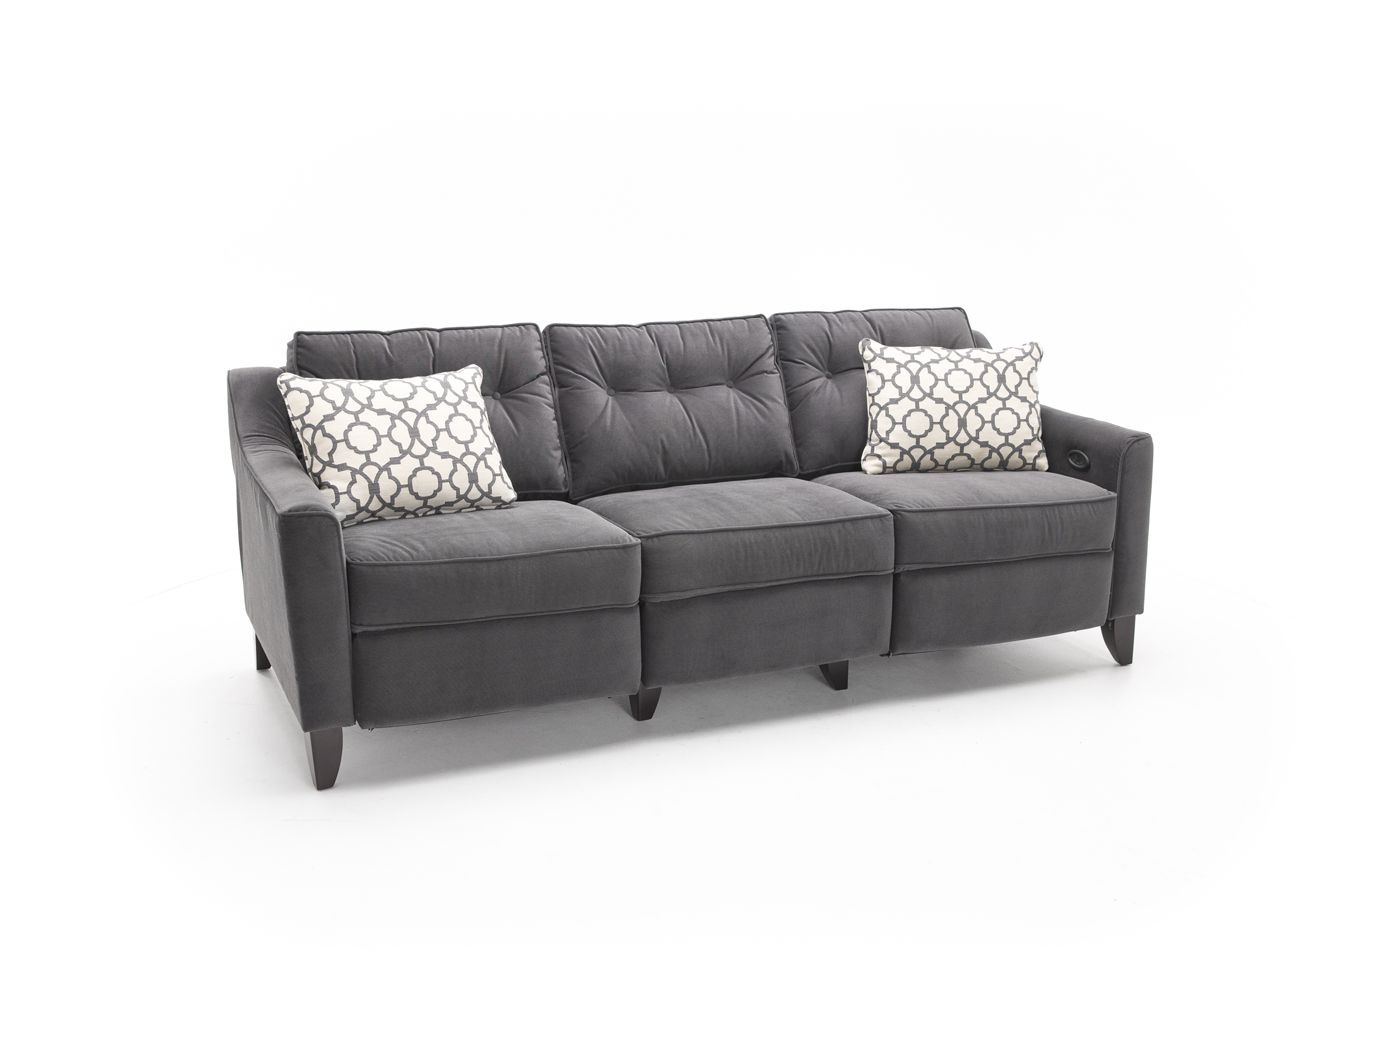 Trisha Yearwood Audrina Power Incline Sofa Steinhafels Living